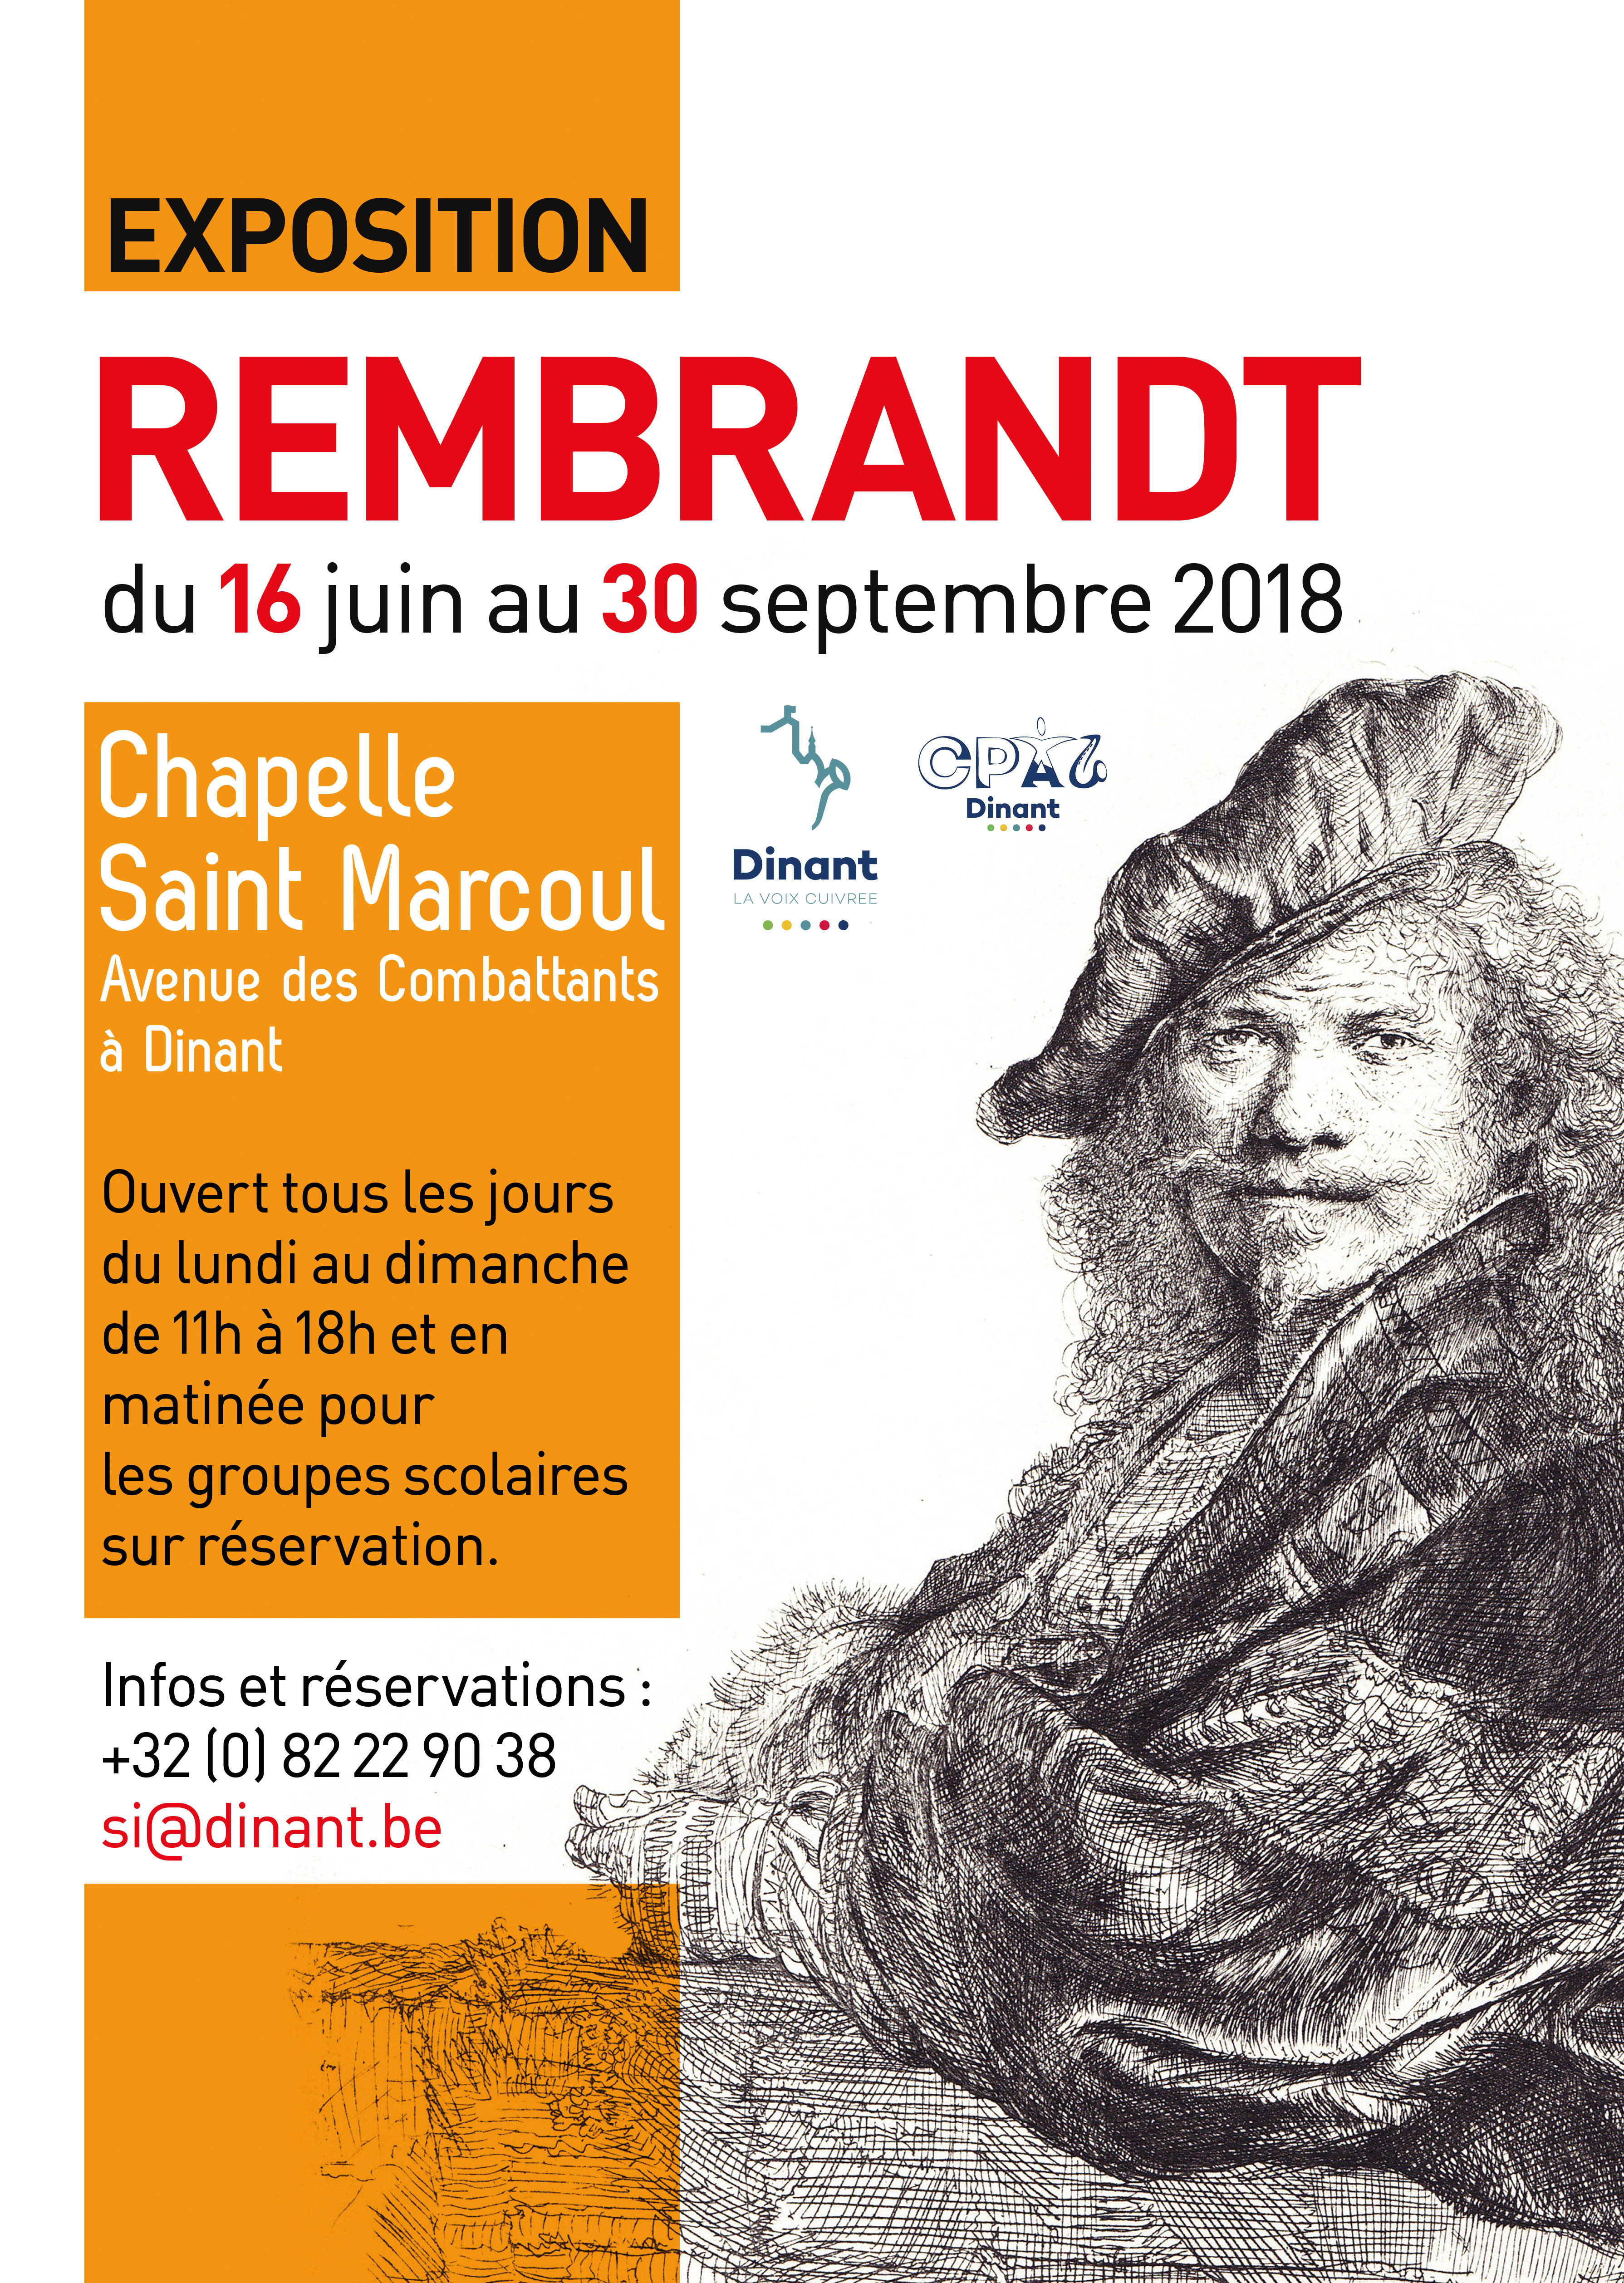 Exposition Rembrandt